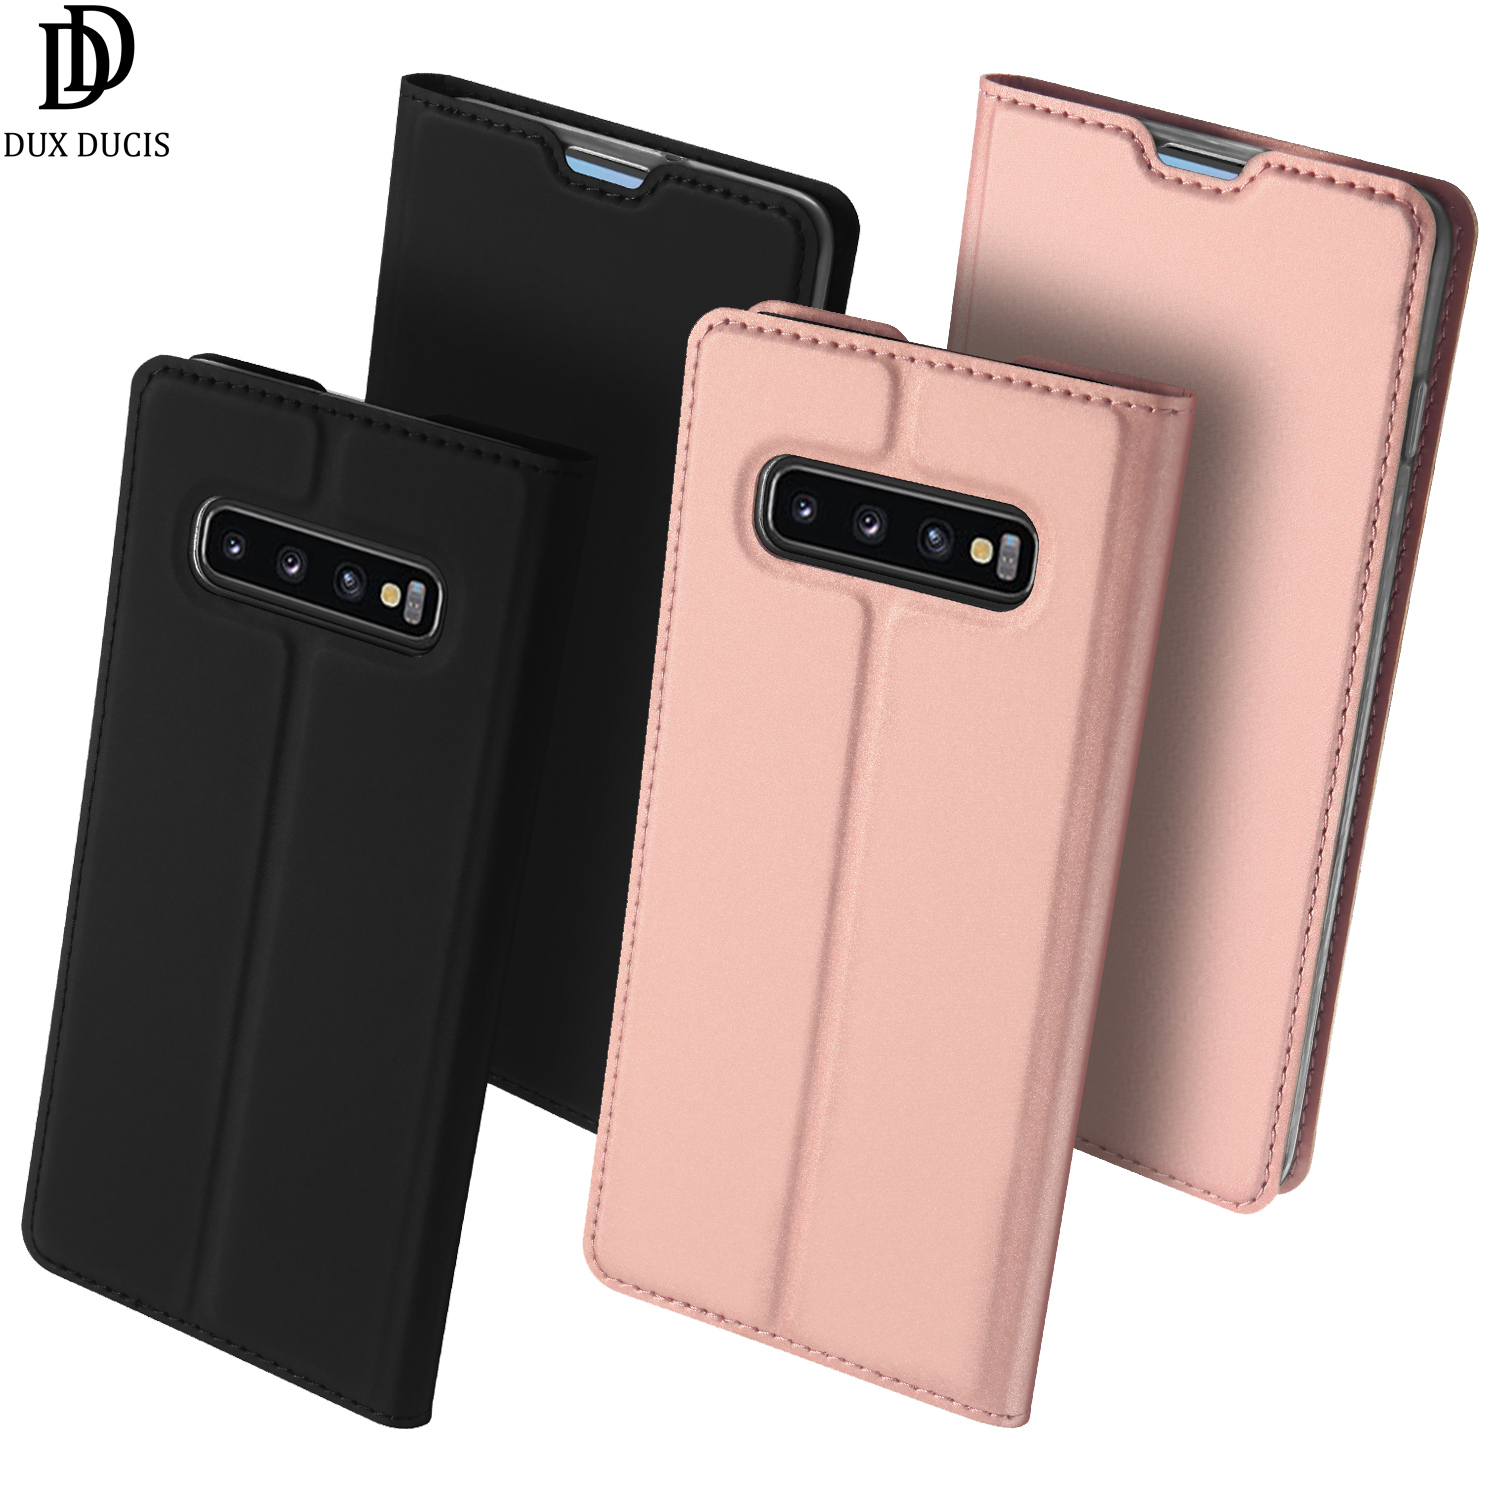 Flip Case For Samsung Galaxy S10 6 1 quot PU Leather TPU Soft Bumper Protective Cover Card Slot Holder Wallet Stand Mobile Phone Bag in Flip Cases from Cellphones amp Telecommunications